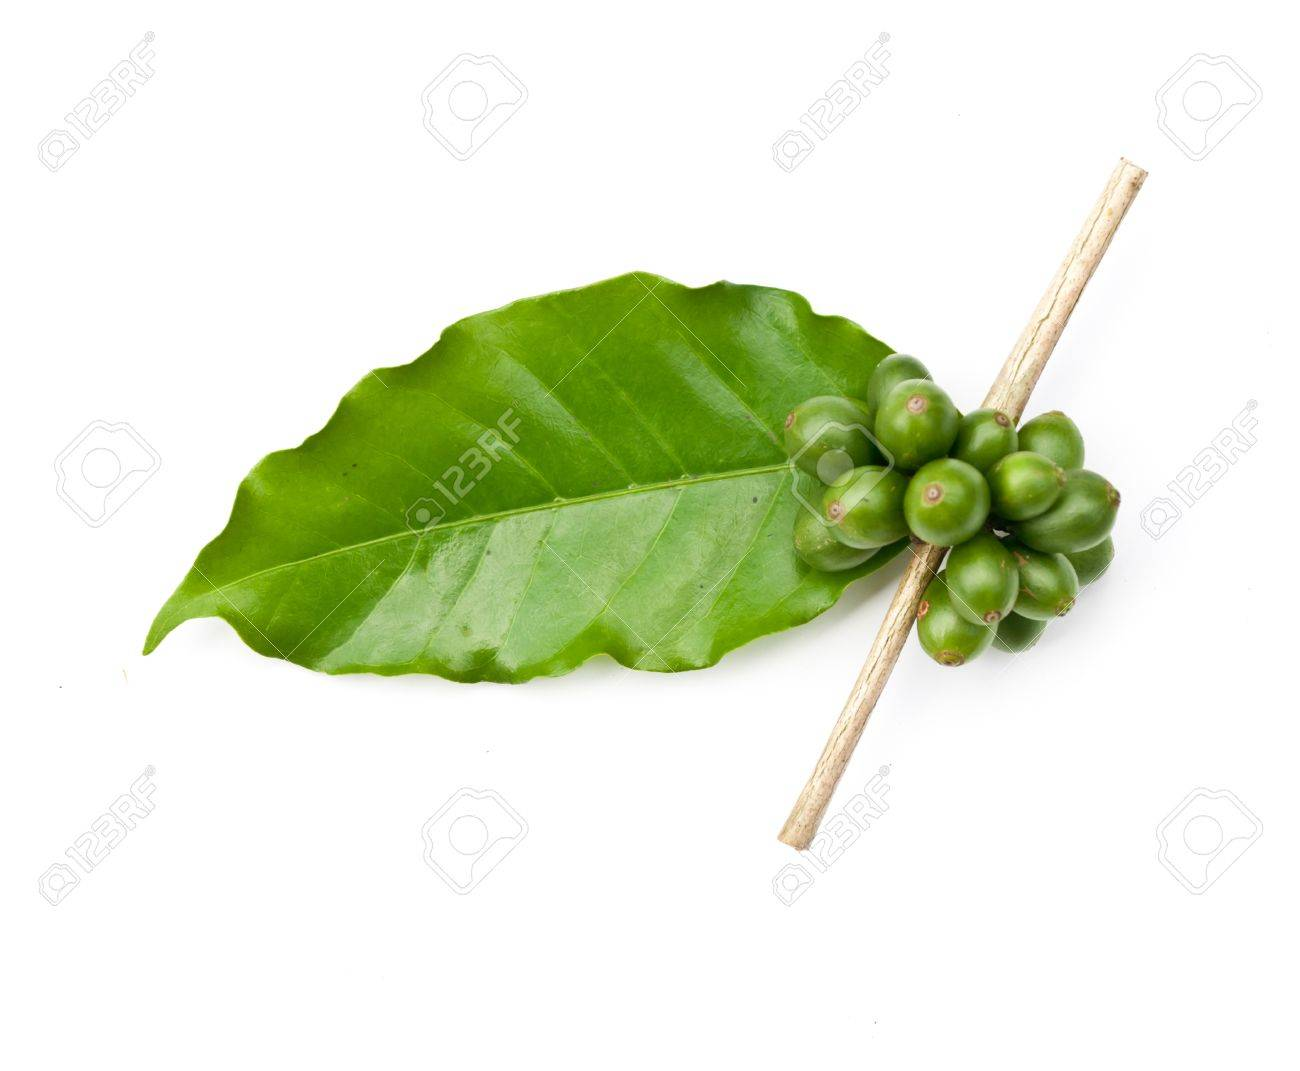 coffee beans and leaf on white background - 14395566